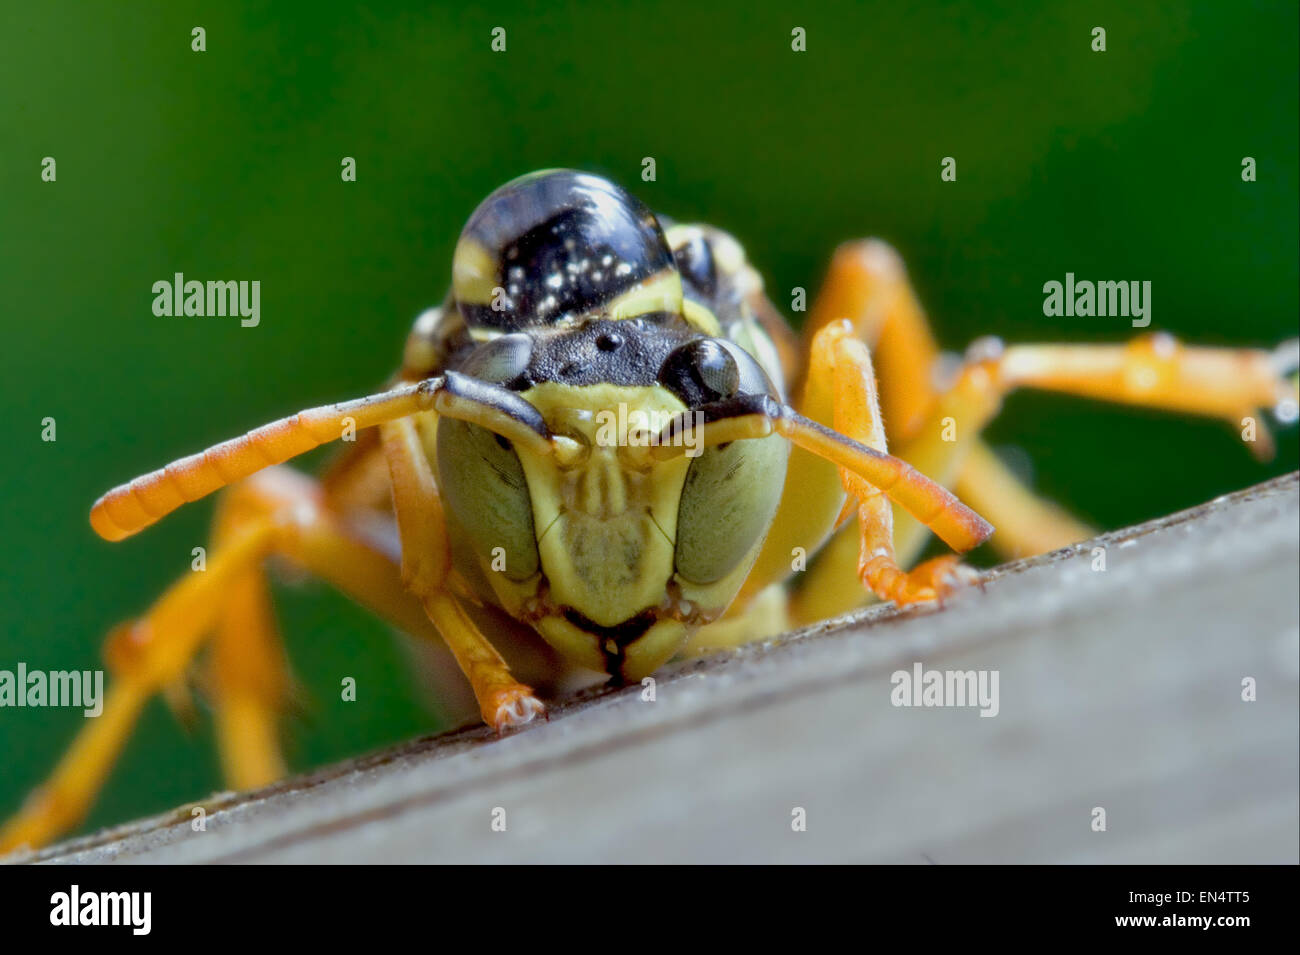 an Hymenopterans with a drop in his hand - Stock Image